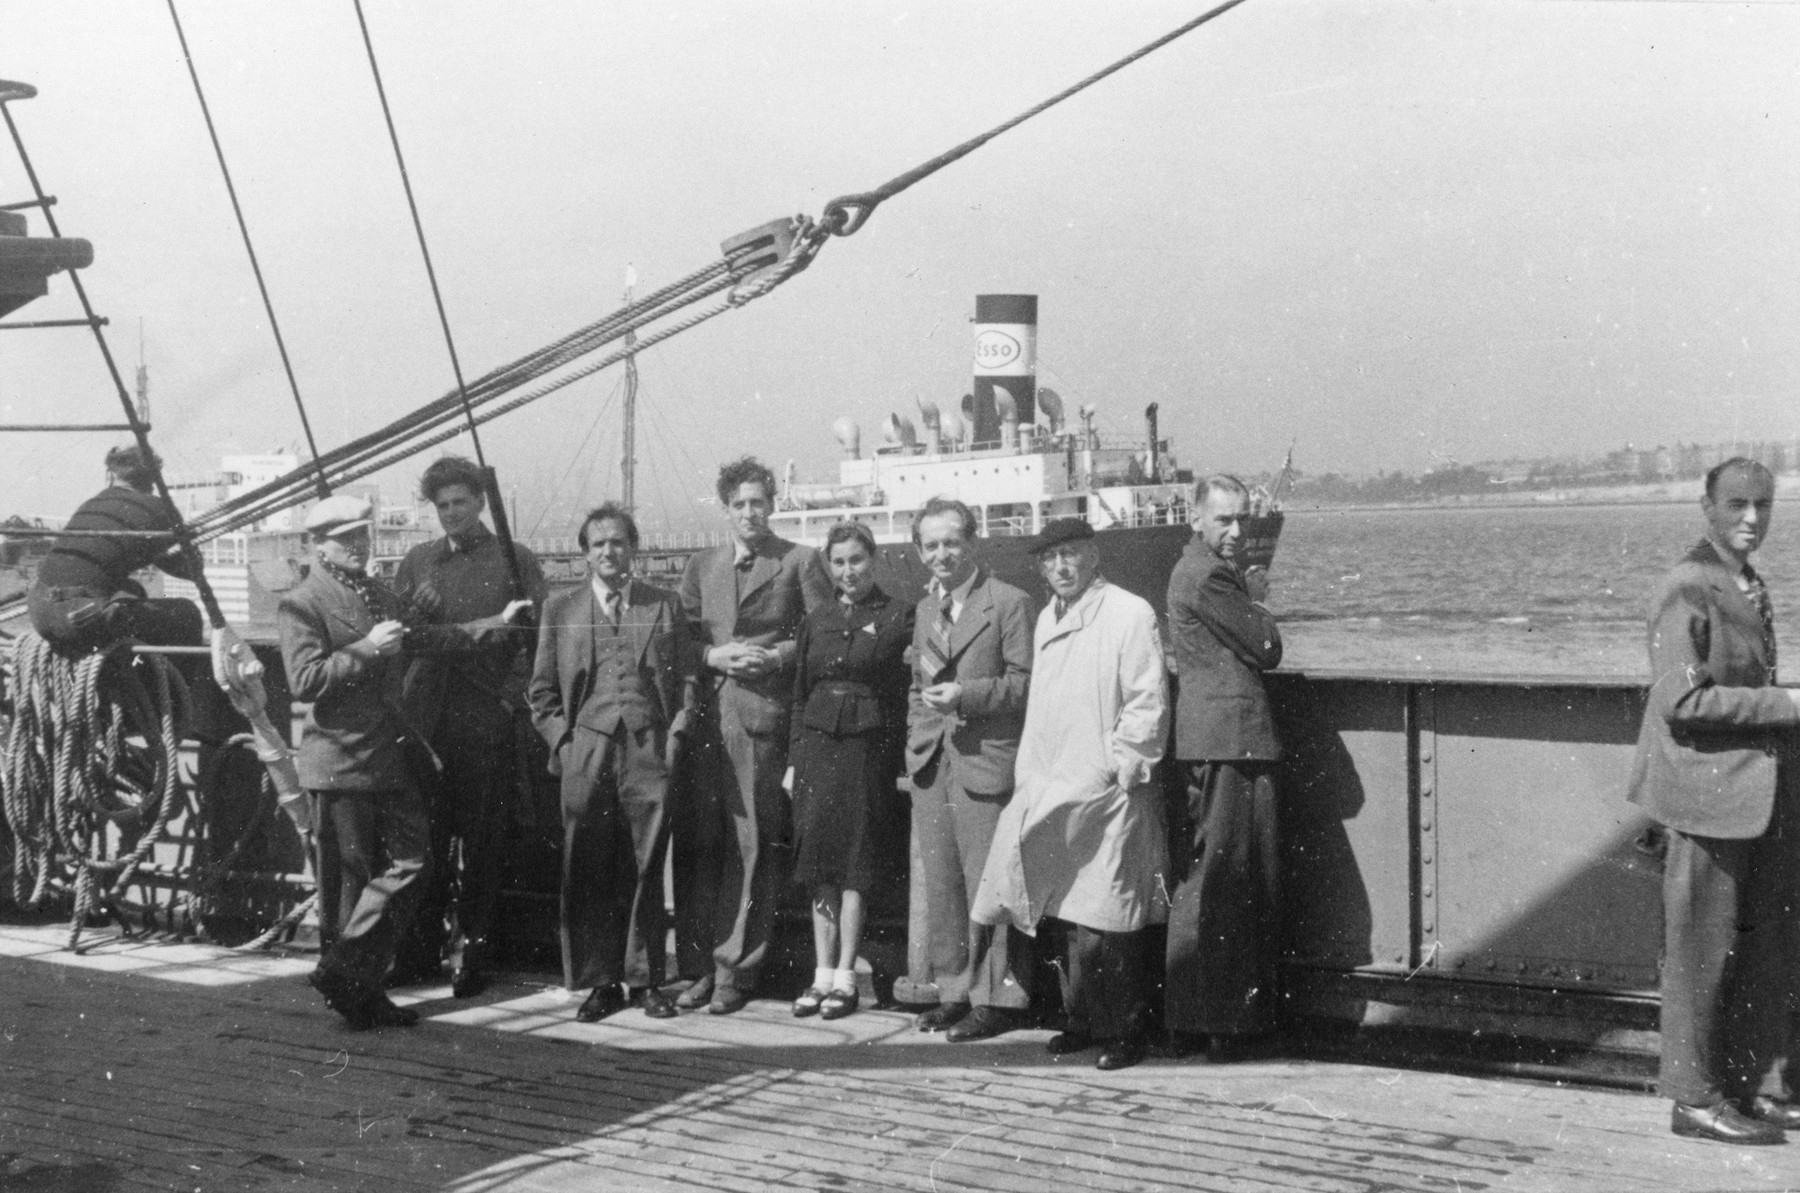 Group portrait of European refugees assisted by the Emergency Rescue Committee on board the  Capitaine Paul-Lemerle, a converted cargo ship sailing from Marseilles to Martinique.  Among those pictured are: Ernst Rossmann, Karl Heidenreich, Dyno Lowenstein, Katrin Kirschmann, Emil Kirschmann, and Peter Grassmann.